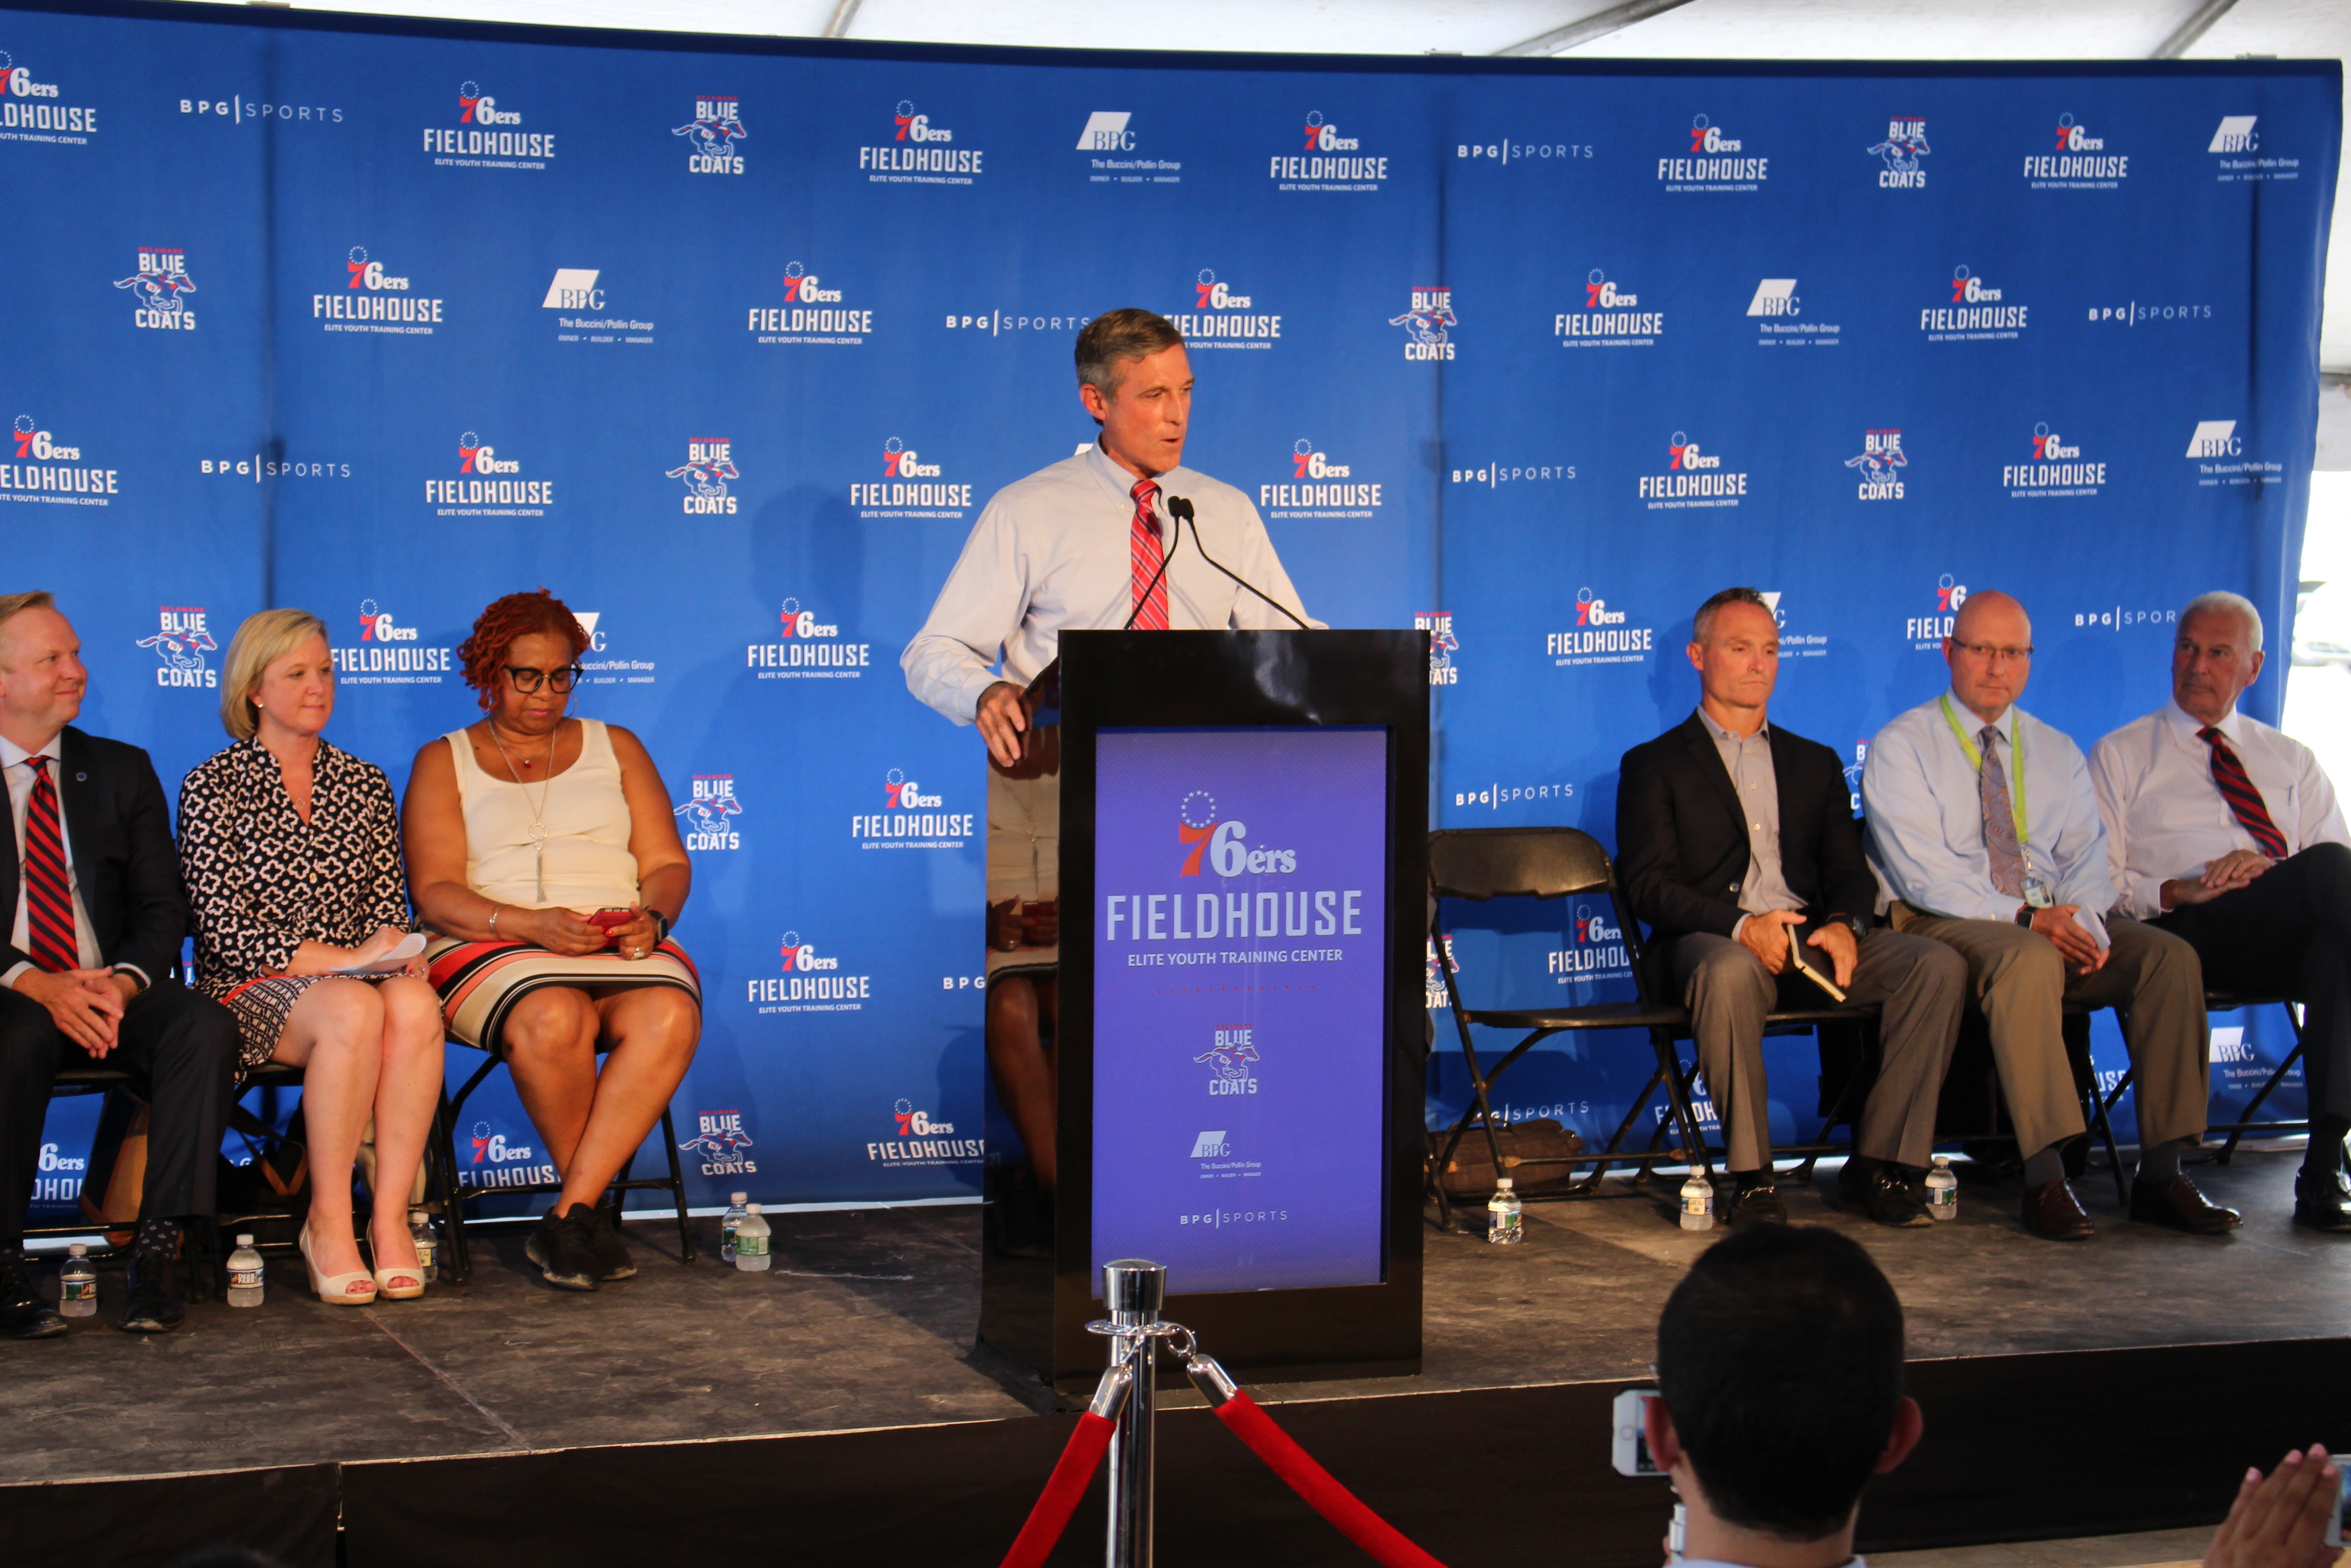 76ers Fieldhouse Moves Forward